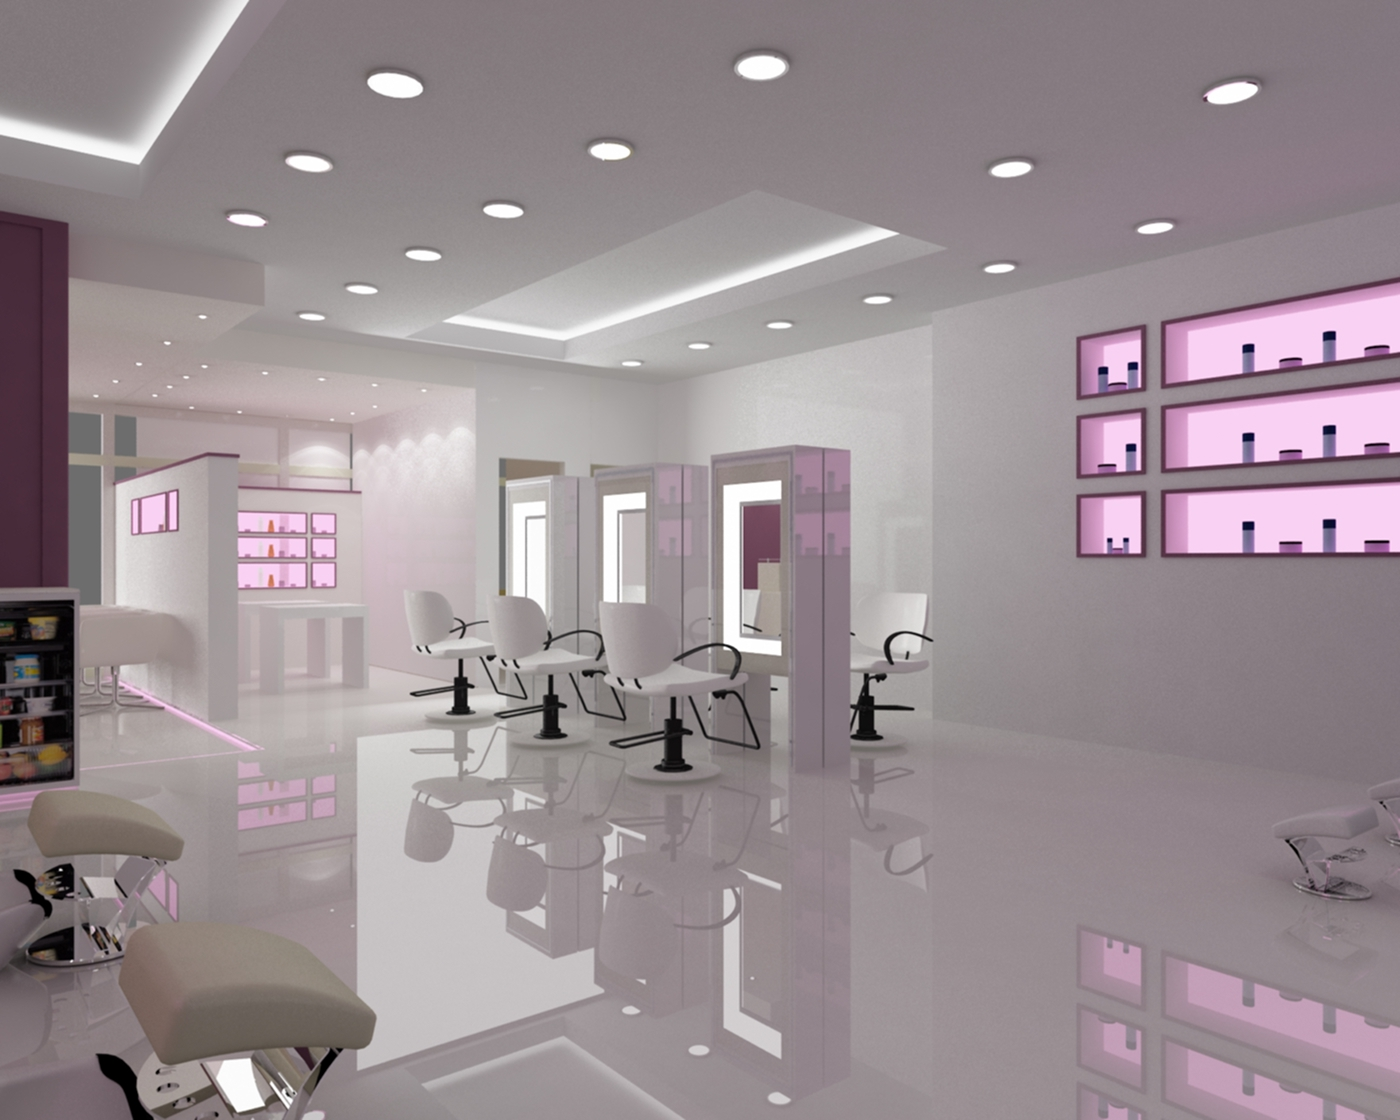 Interior concept for beauty salon on behance - Beauty salon interior design pictures ...